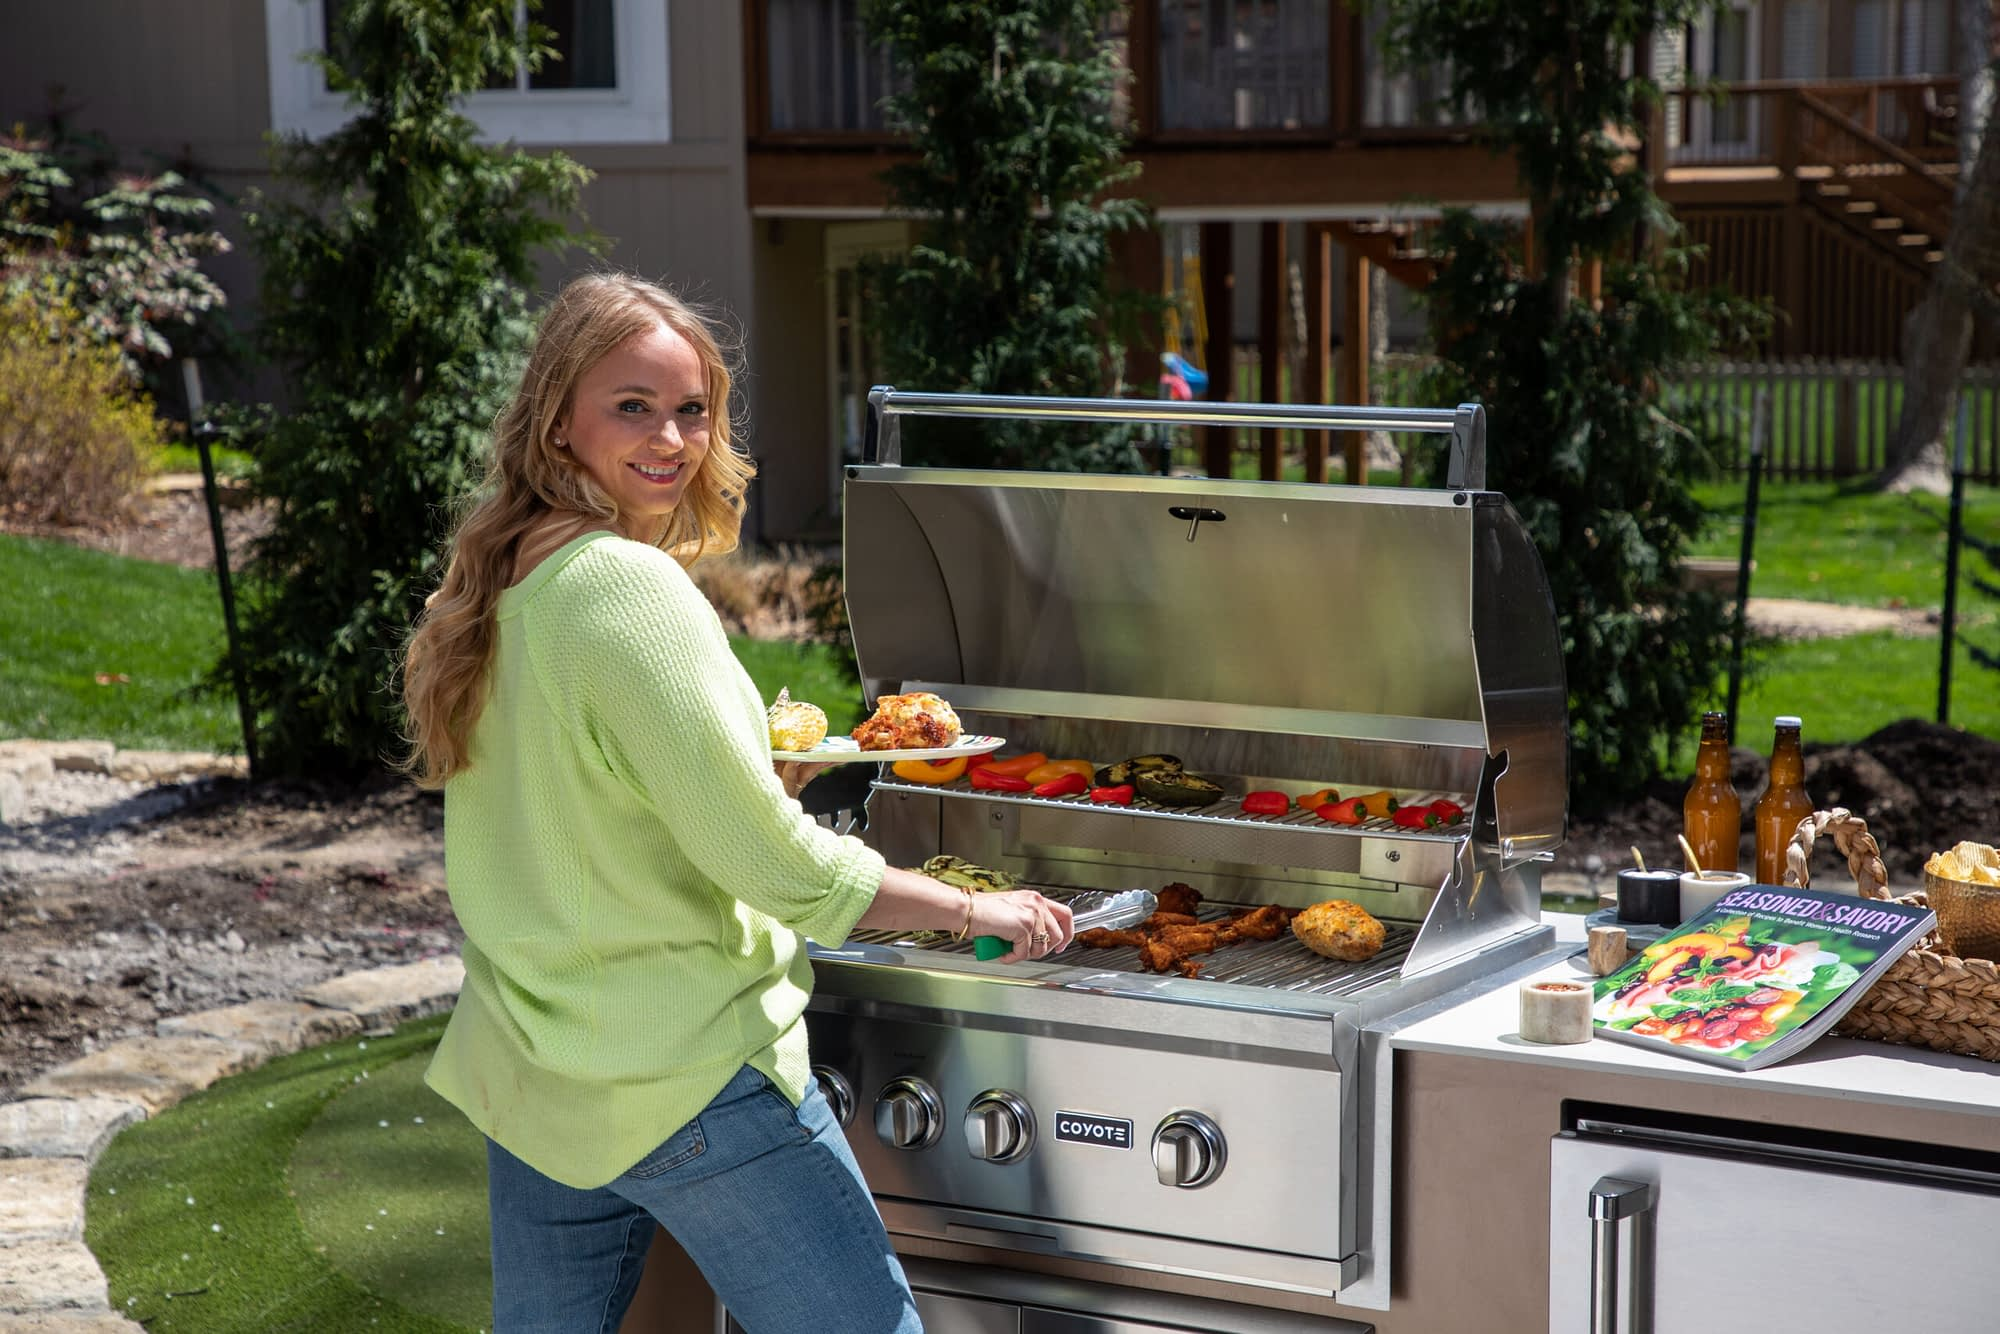 Built In Grill 5 Considerations to Choose the Right One for Your Outdoor Kitchen - Featured Image